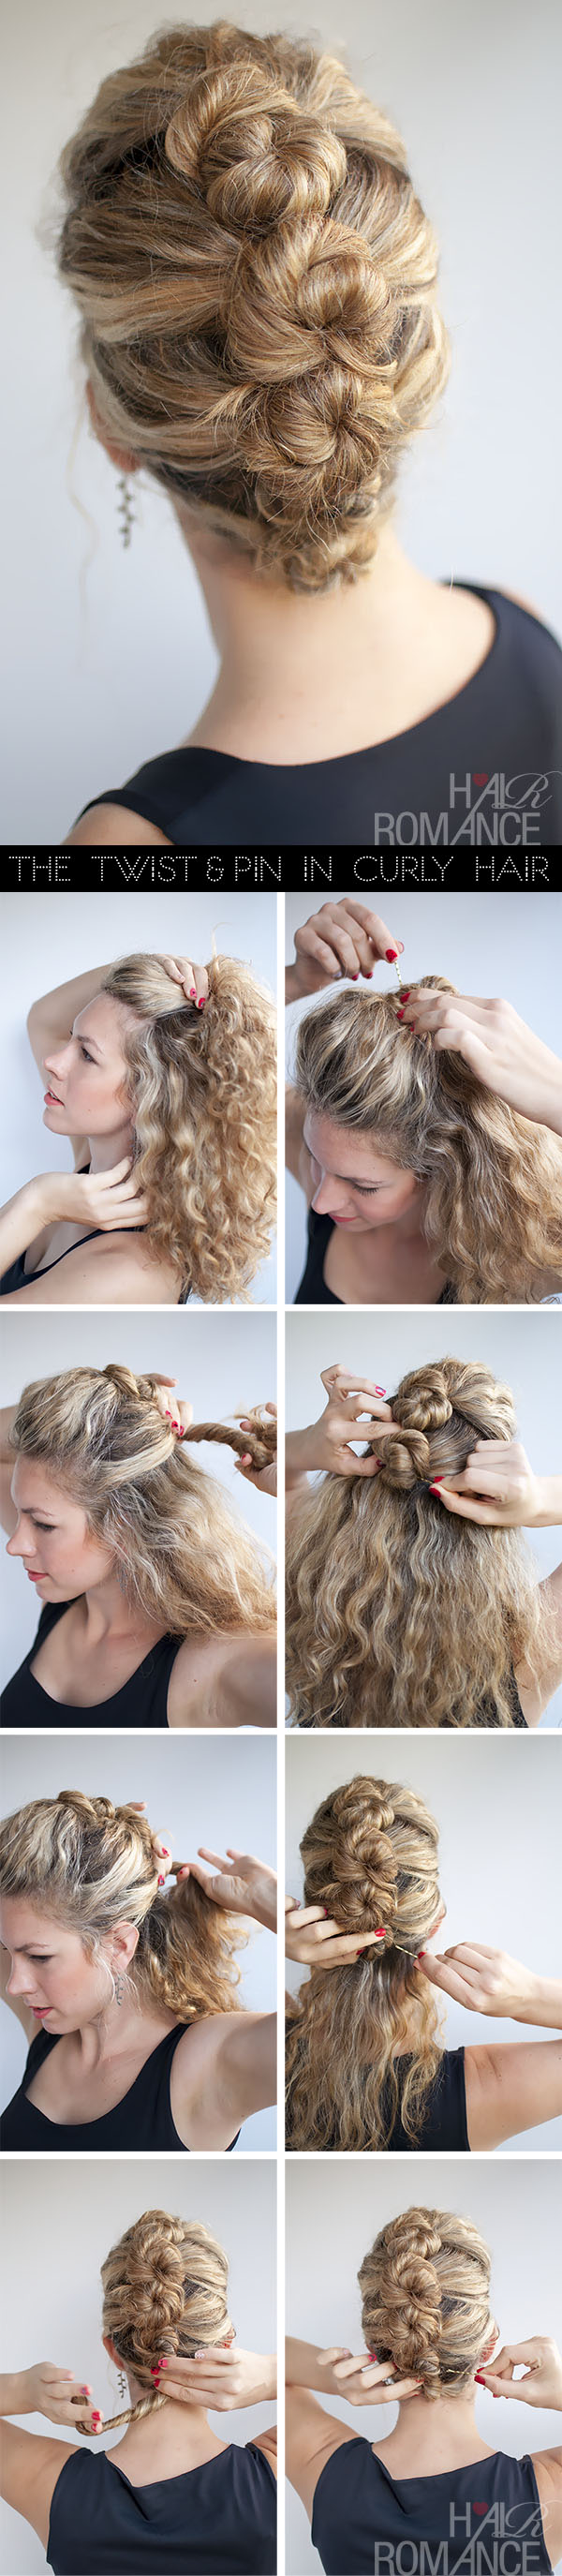 Hair-Romance-hairstyle-tutorial-The-French-Twist-and-Pin-in-curly-hair